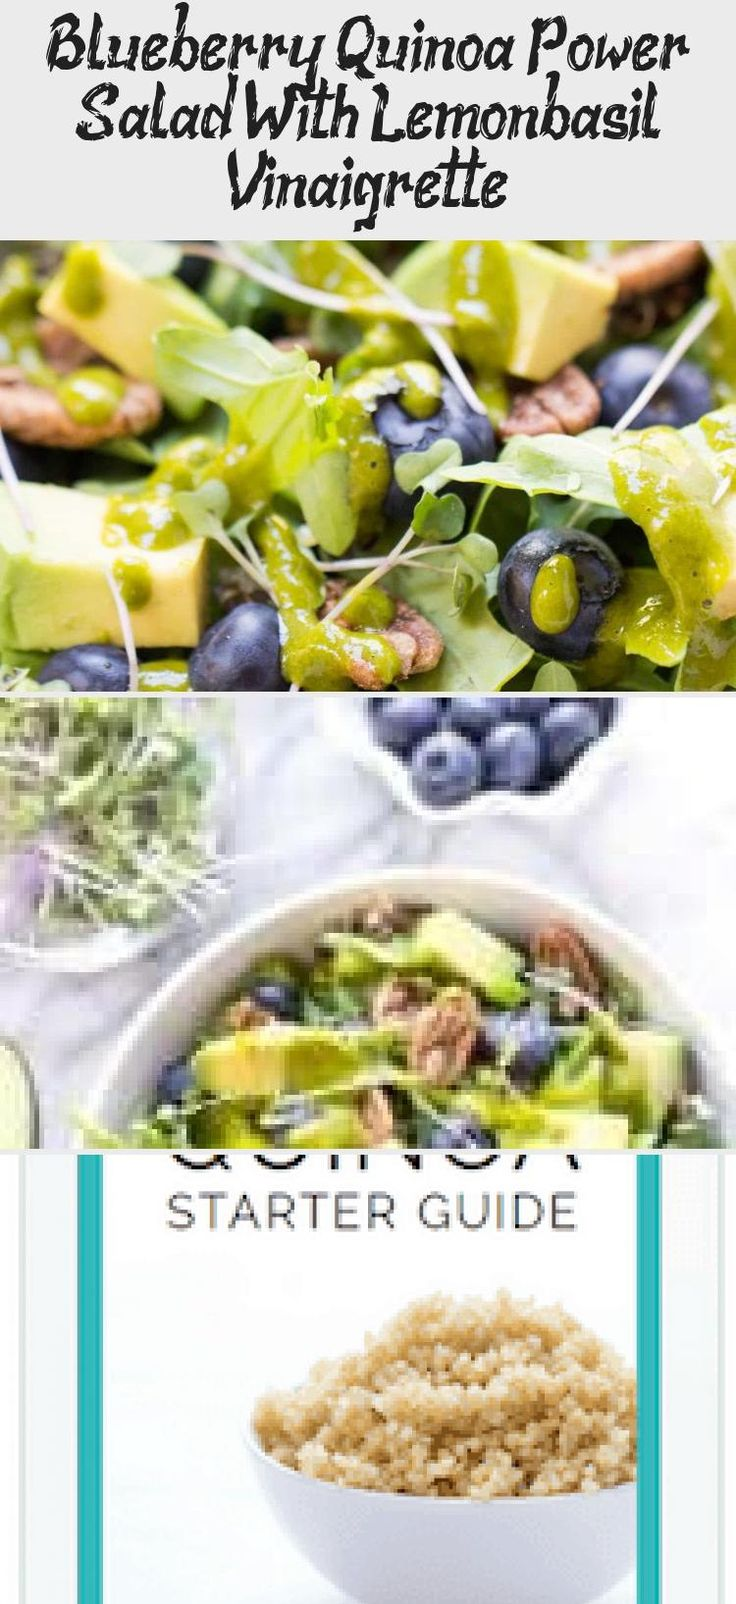 You'll LOVE this healthy Blueberry Quinoa Power Salad recipe! So easy to make and loaded with detoxifying, anti-inflammatory ingredients. #quinoasalad #blueberrysalad #saladrecipes #Carrotsaladrecipes #saladrecipesBroccoli #saladrecipesHealthy #Summersaladrecipes #Warmsaladrecipes